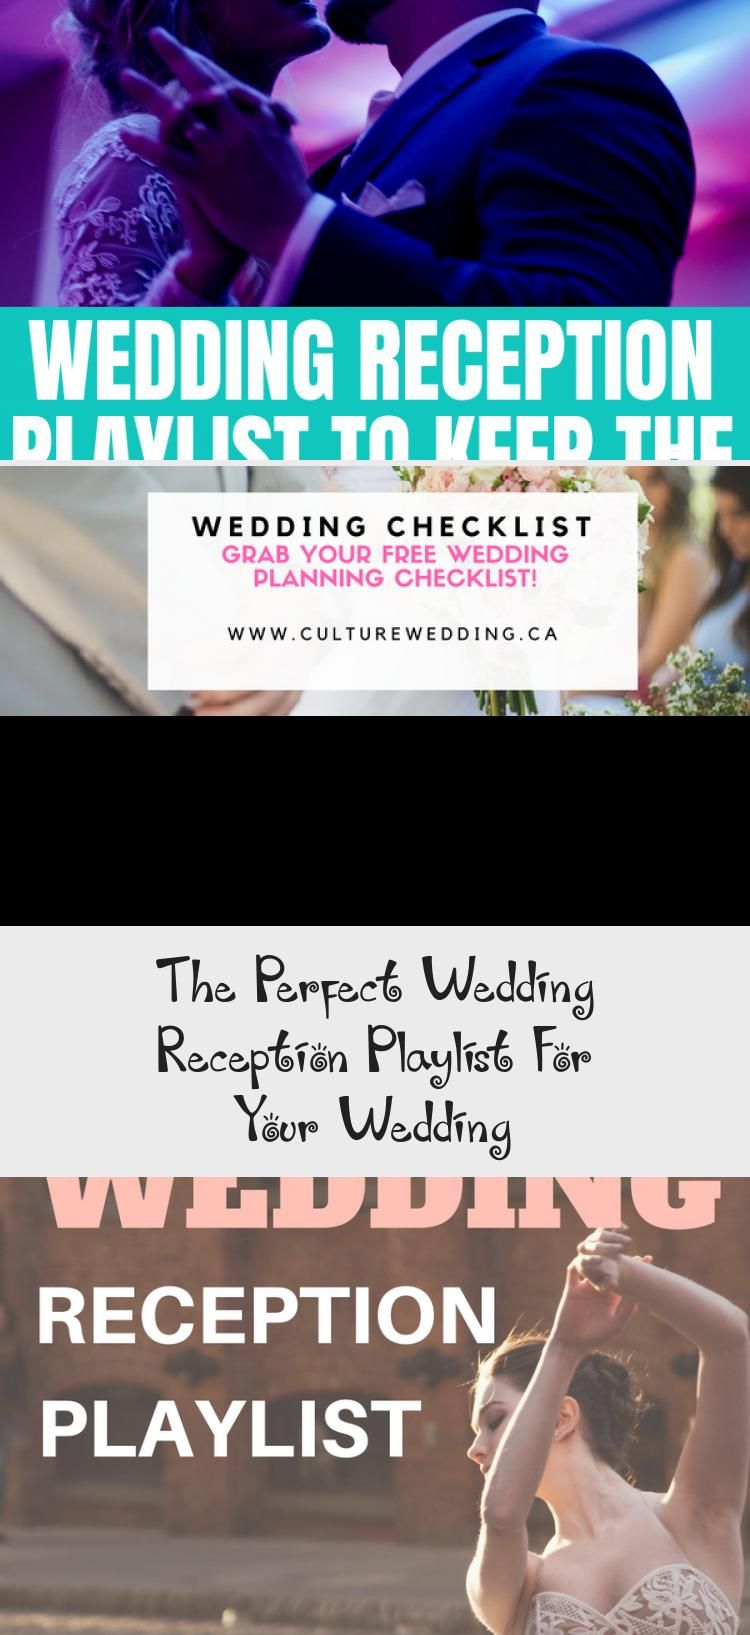 The Perfect Wedding Reception Playlist. Wedding Reception